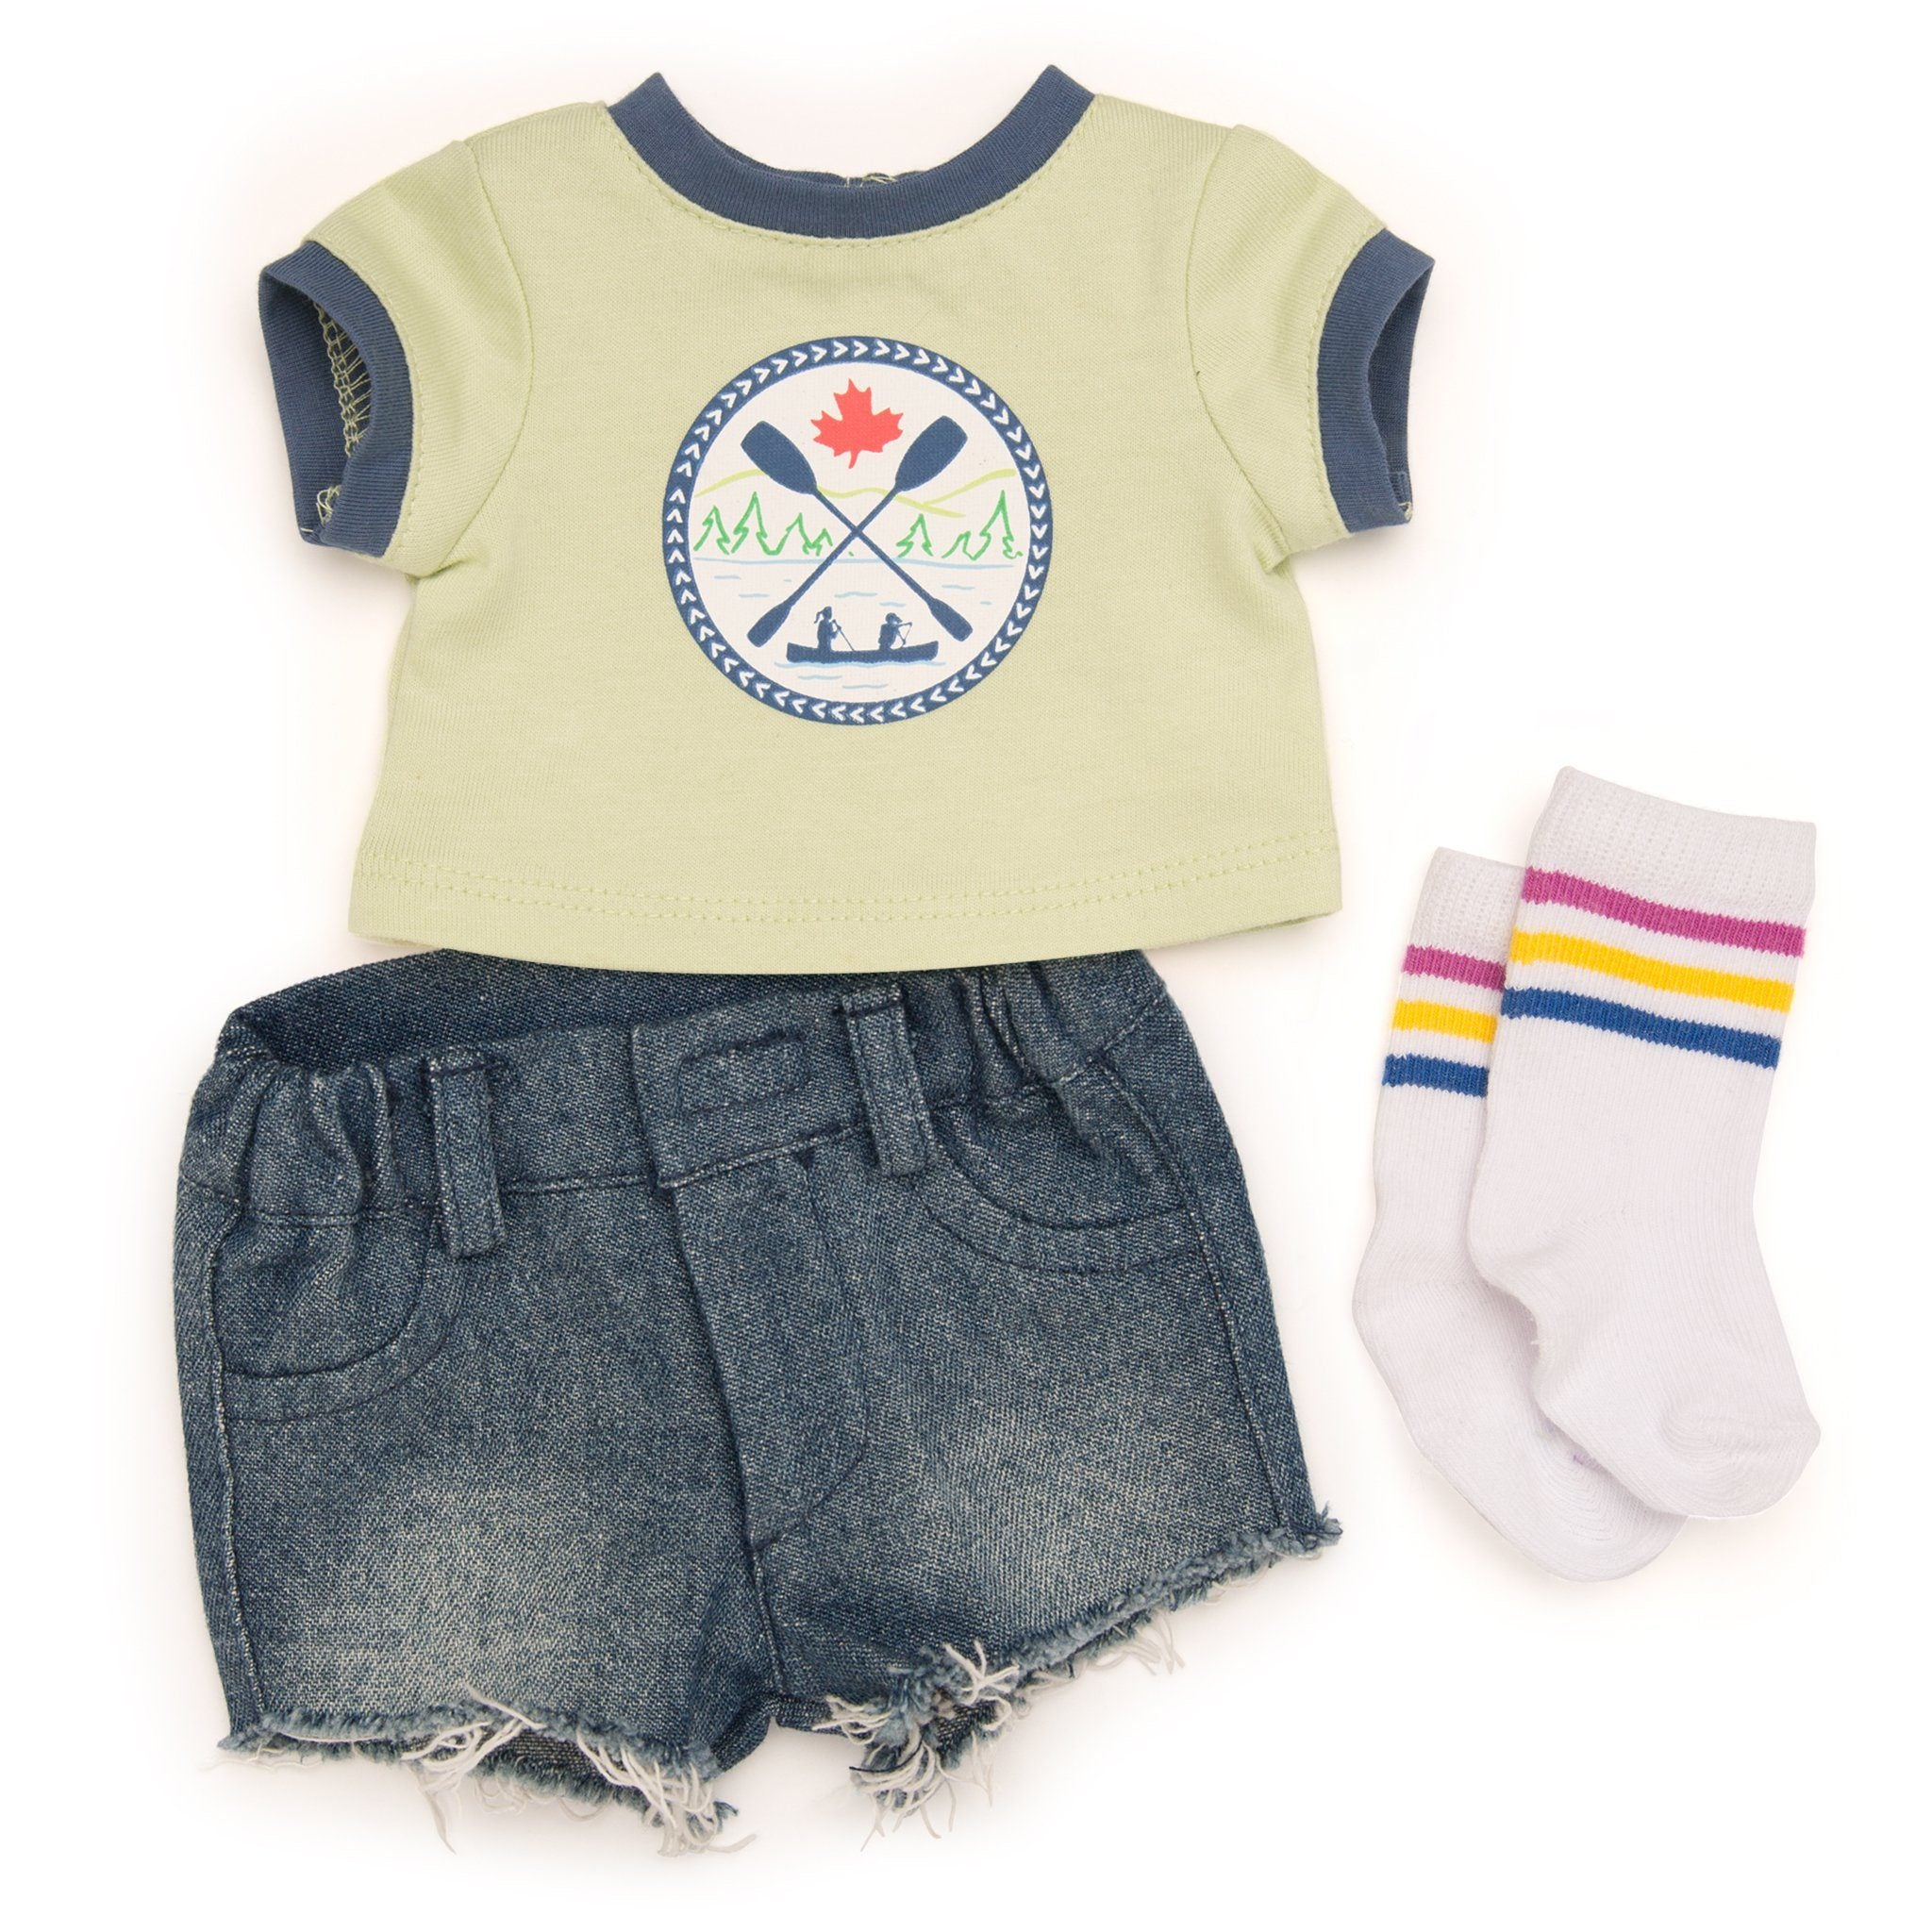 Camp Style outfit cut-off jean shorts, ringer tee with logo, striped socks fits all 18 inch dolls.